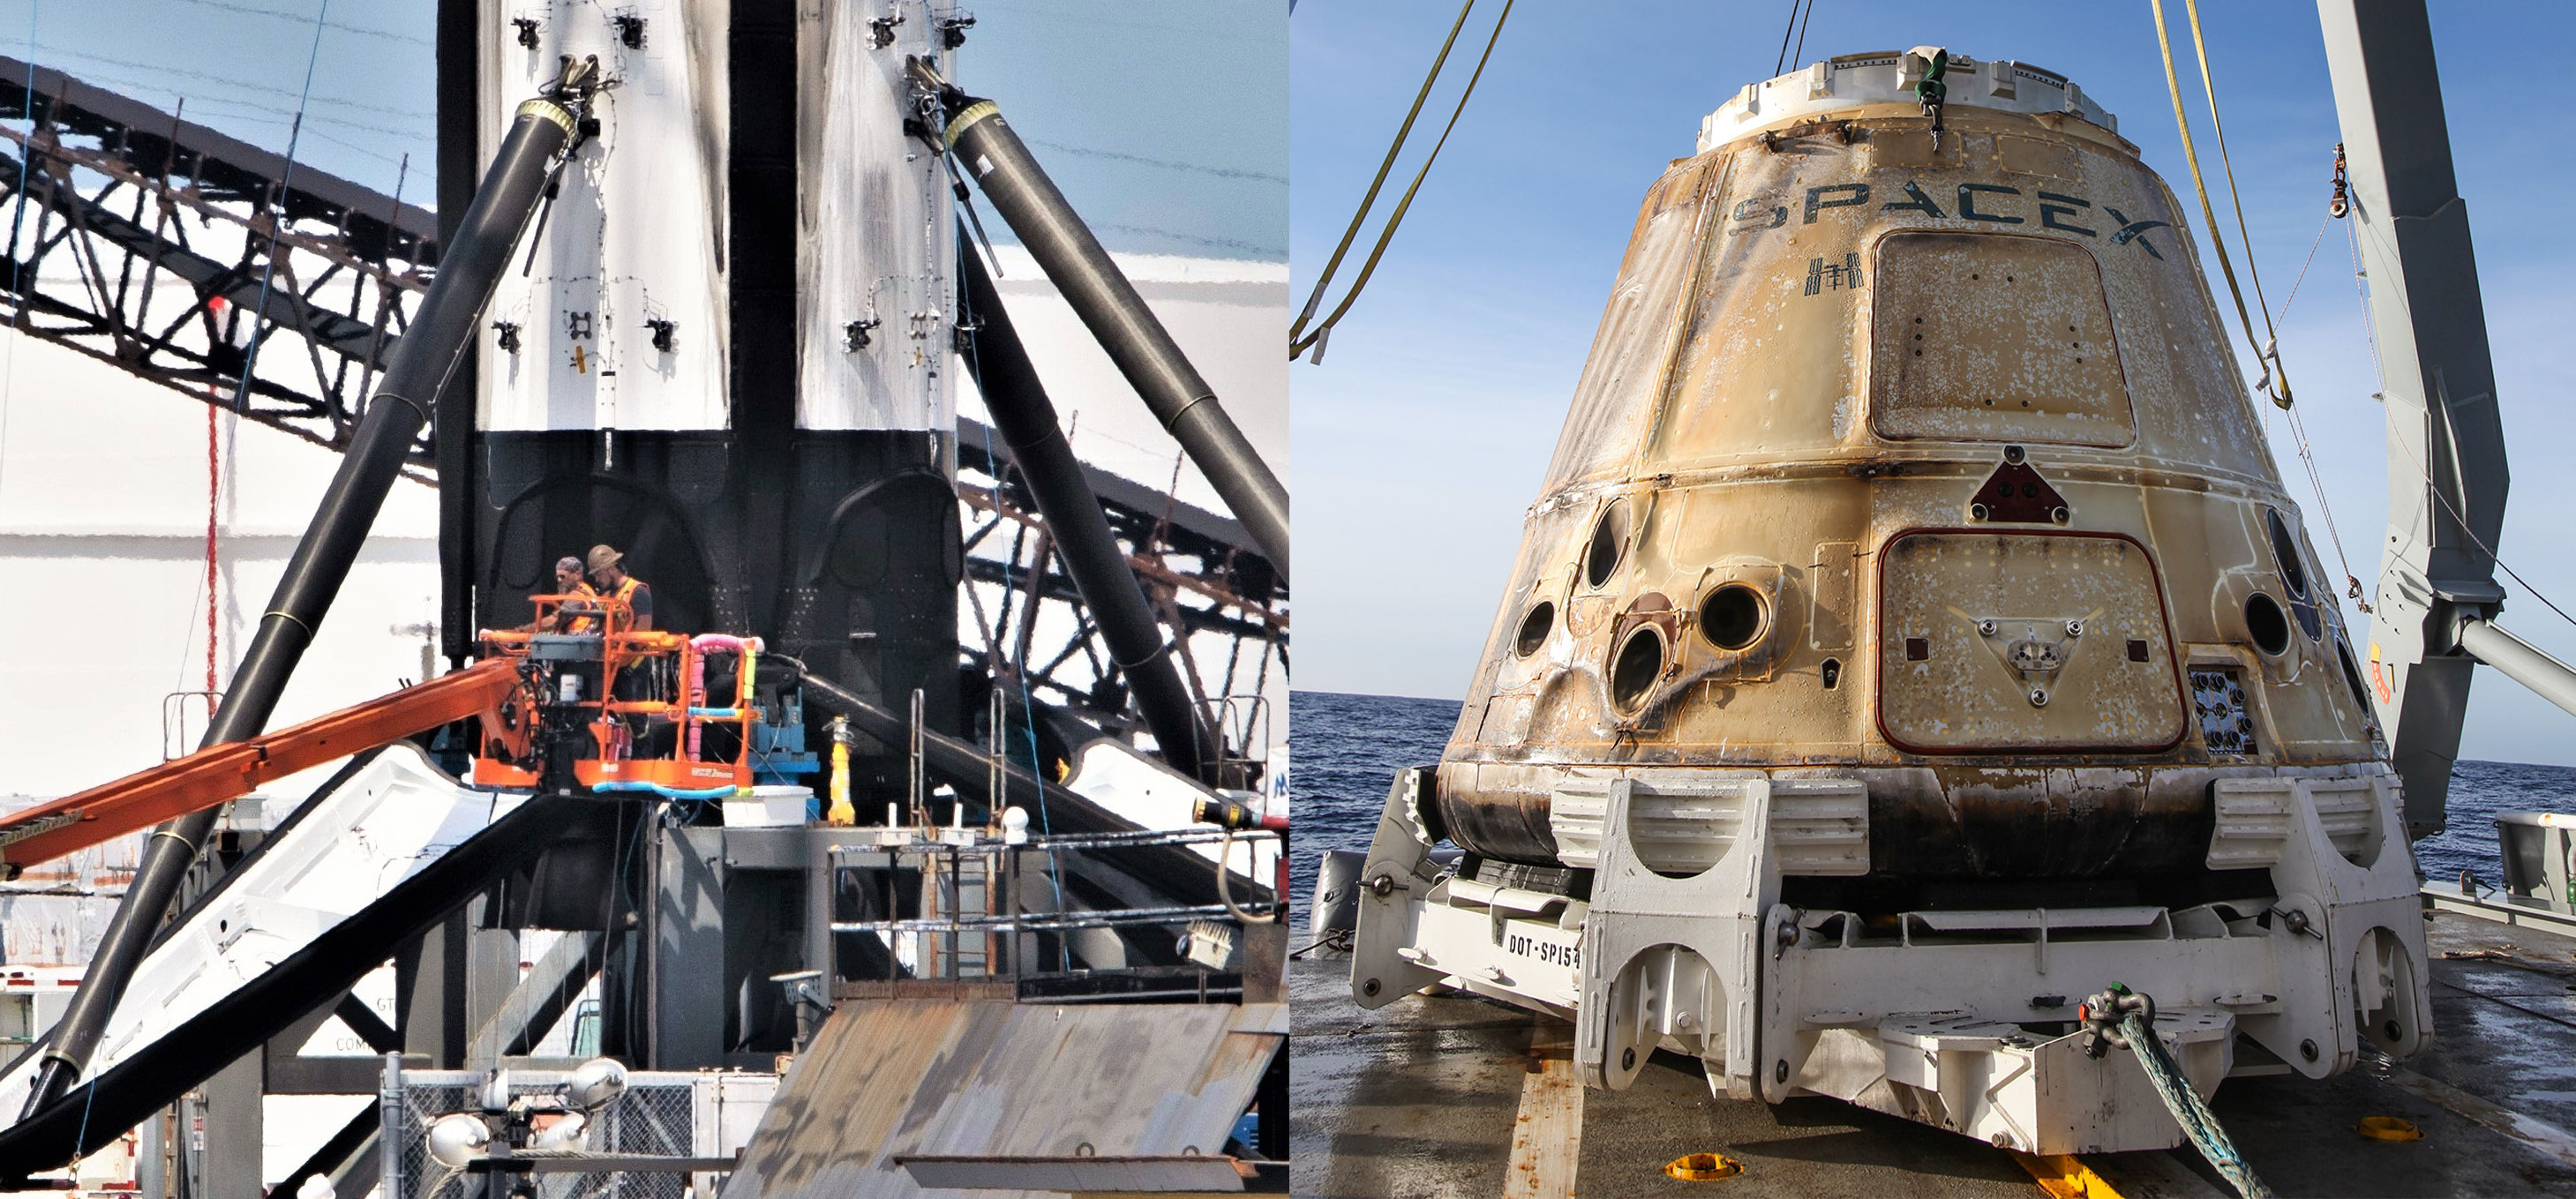 Falcon 9 b1056 leg retraction & Cargo Dragon C108 (Tom Cross & SpaceX)) 1